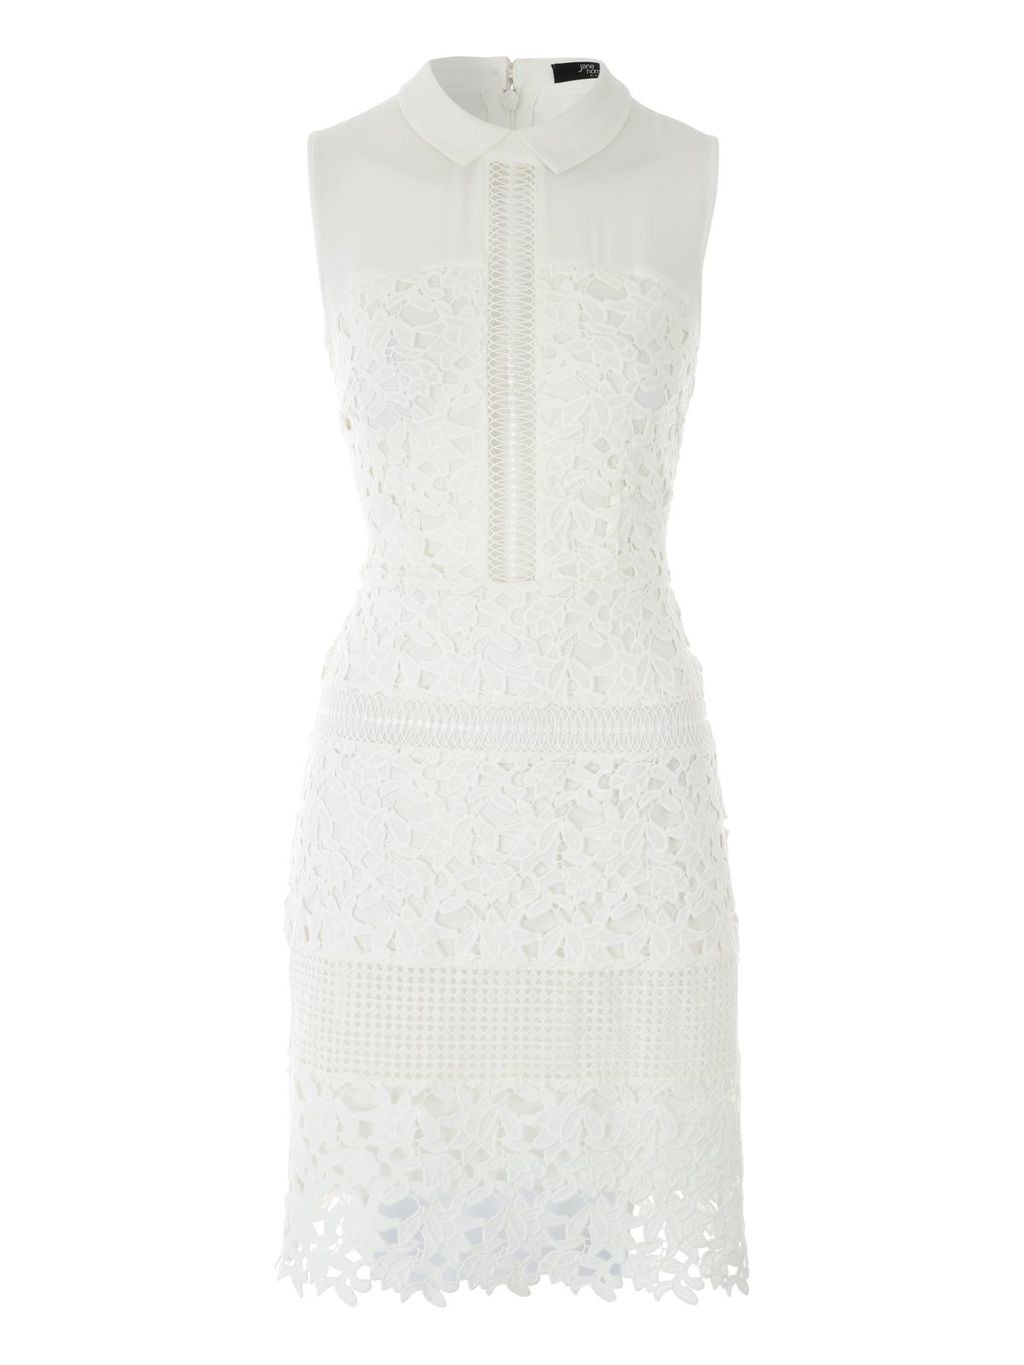 White Lace Panels Sleeveless Dress, Ivory - style: shift; fit: tailored/fitted; sleeve style: sleeveless; predominant colour: ivory/cream; occasions: evening; length: just above the knee; neckline: collarstand; fibres: polyester/polyamide - 100%; sleeve length: sleeveless; pattern type: fabric; pattern size: standard; pattern: patterned/print; texture group: other - light to midweight; embellishment: lace; season: s/s 2016; wardrobe: event